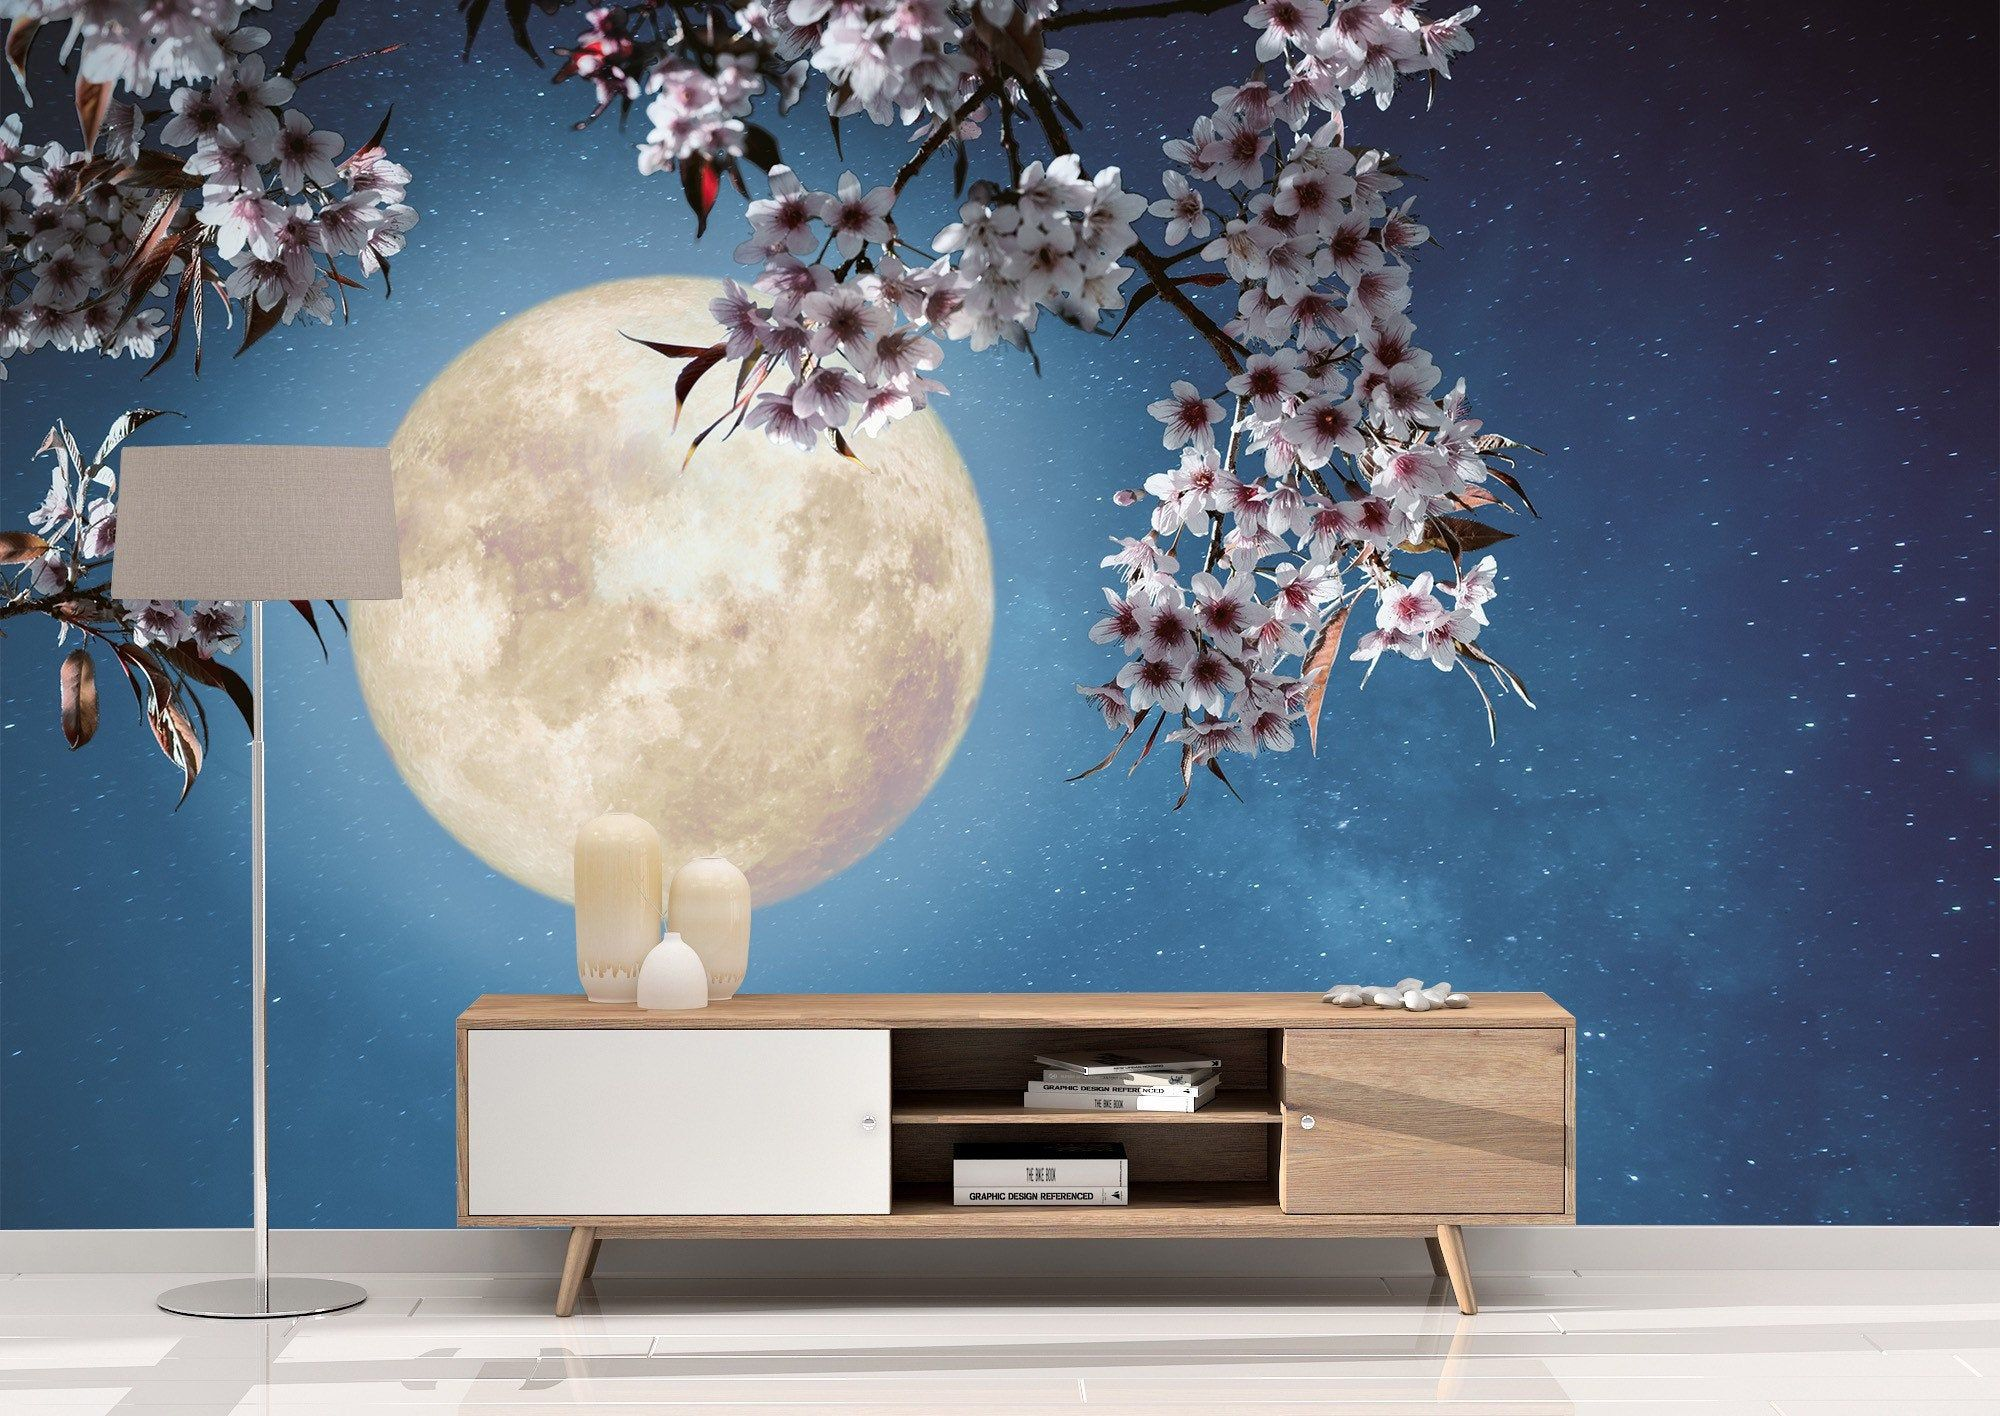 Removable Peel And Stick Wallpaper Full Moon And Cherry Blossom Tree Wall Mural Wallpaper Large Wall Murals Wall Murals Fabric Wall Decals